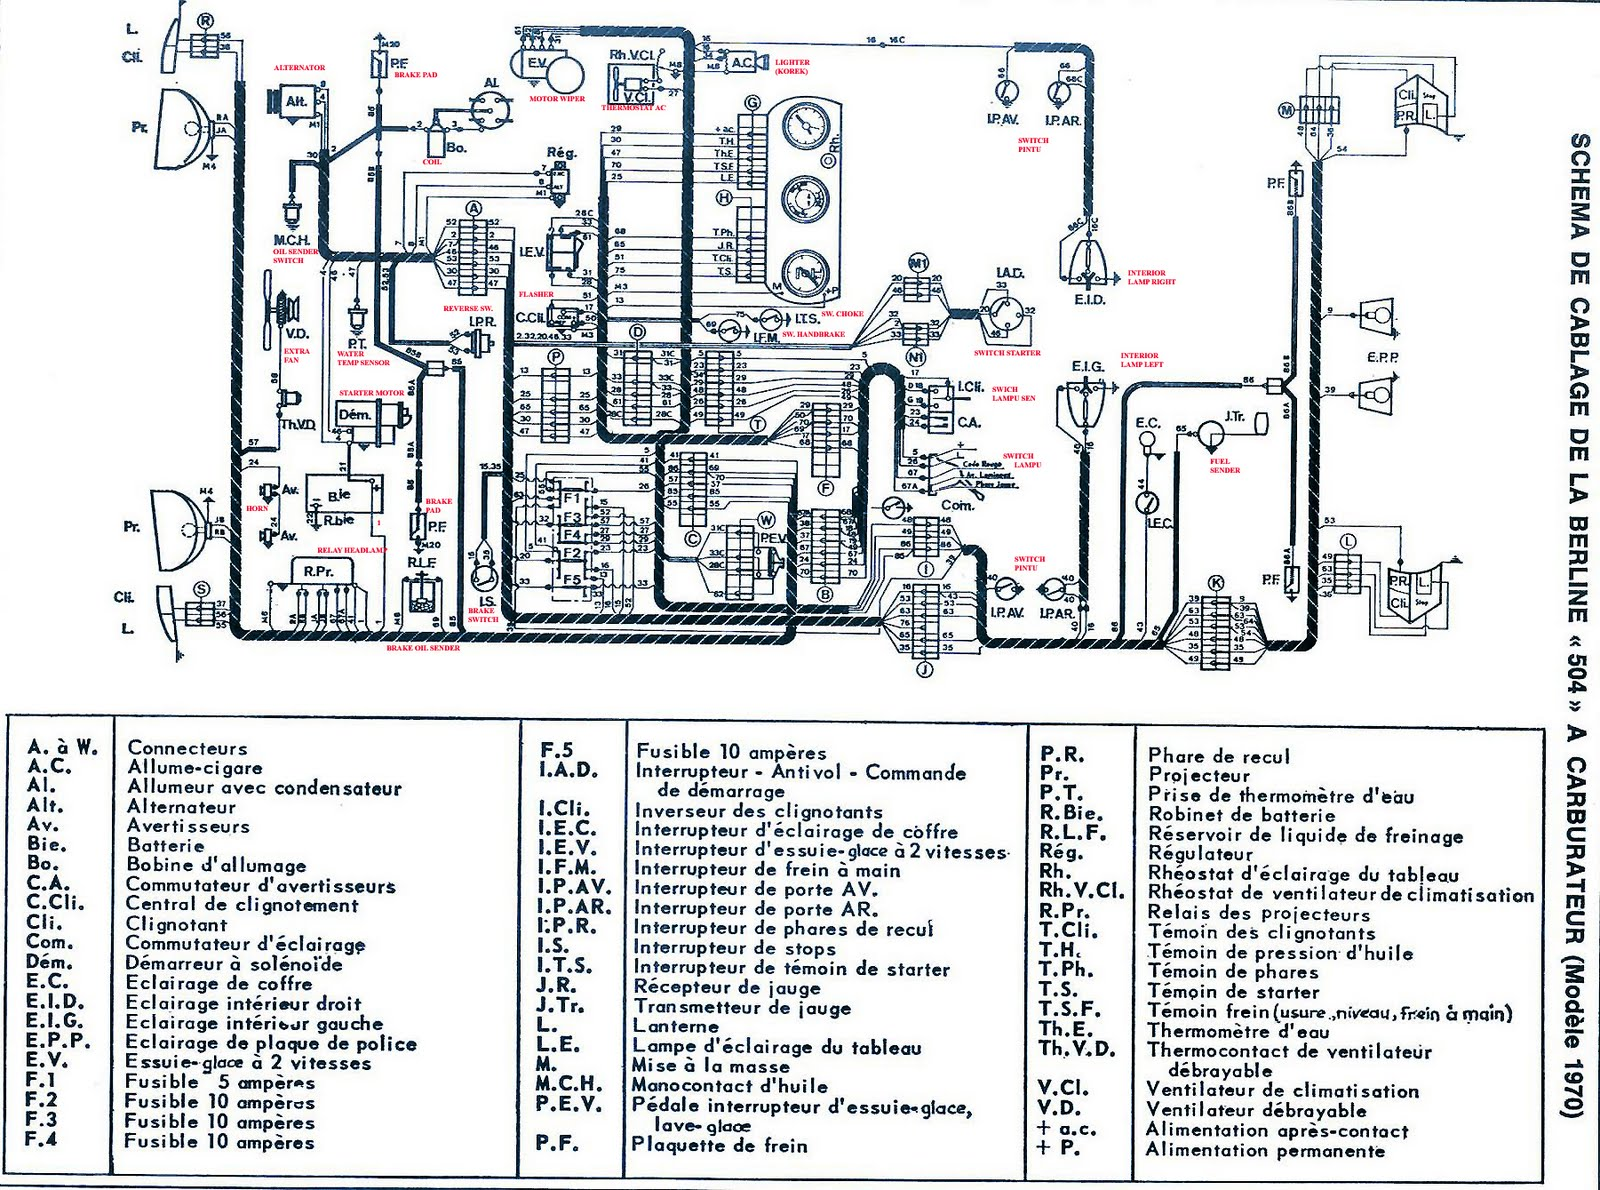 Admirable Wiring Diagram Ecu Mobil Basic Electronics Wiring Diagram Wiring 101 Breceaxxcnl